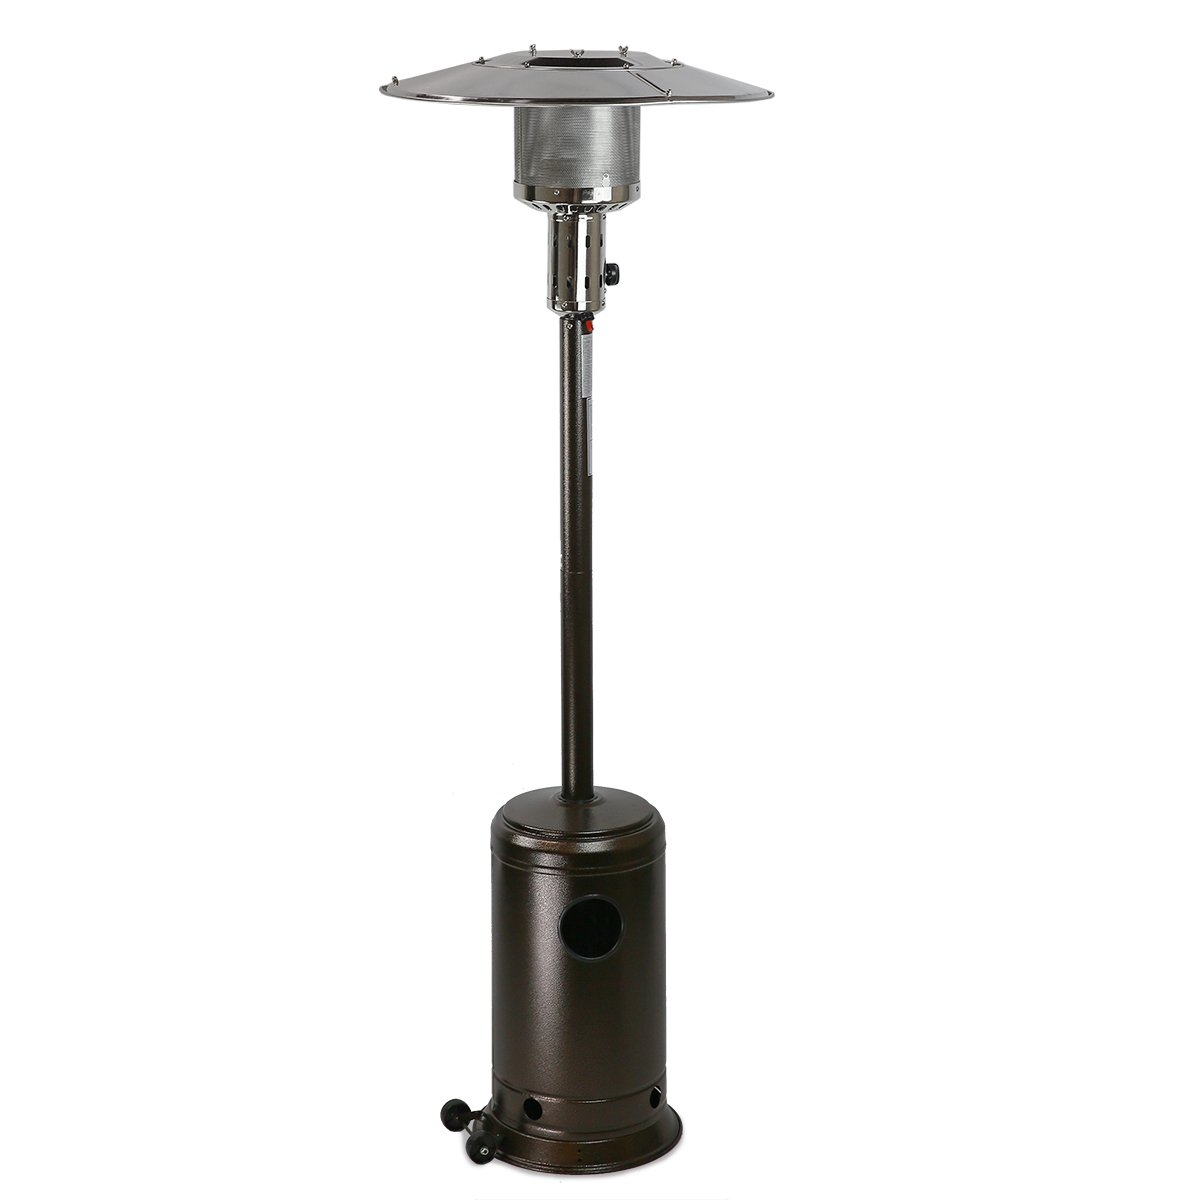 XtremepowerUS 48,000 BTU Premium Floor Standing Propane Outdoor Patio Heater - Bronze Hammered